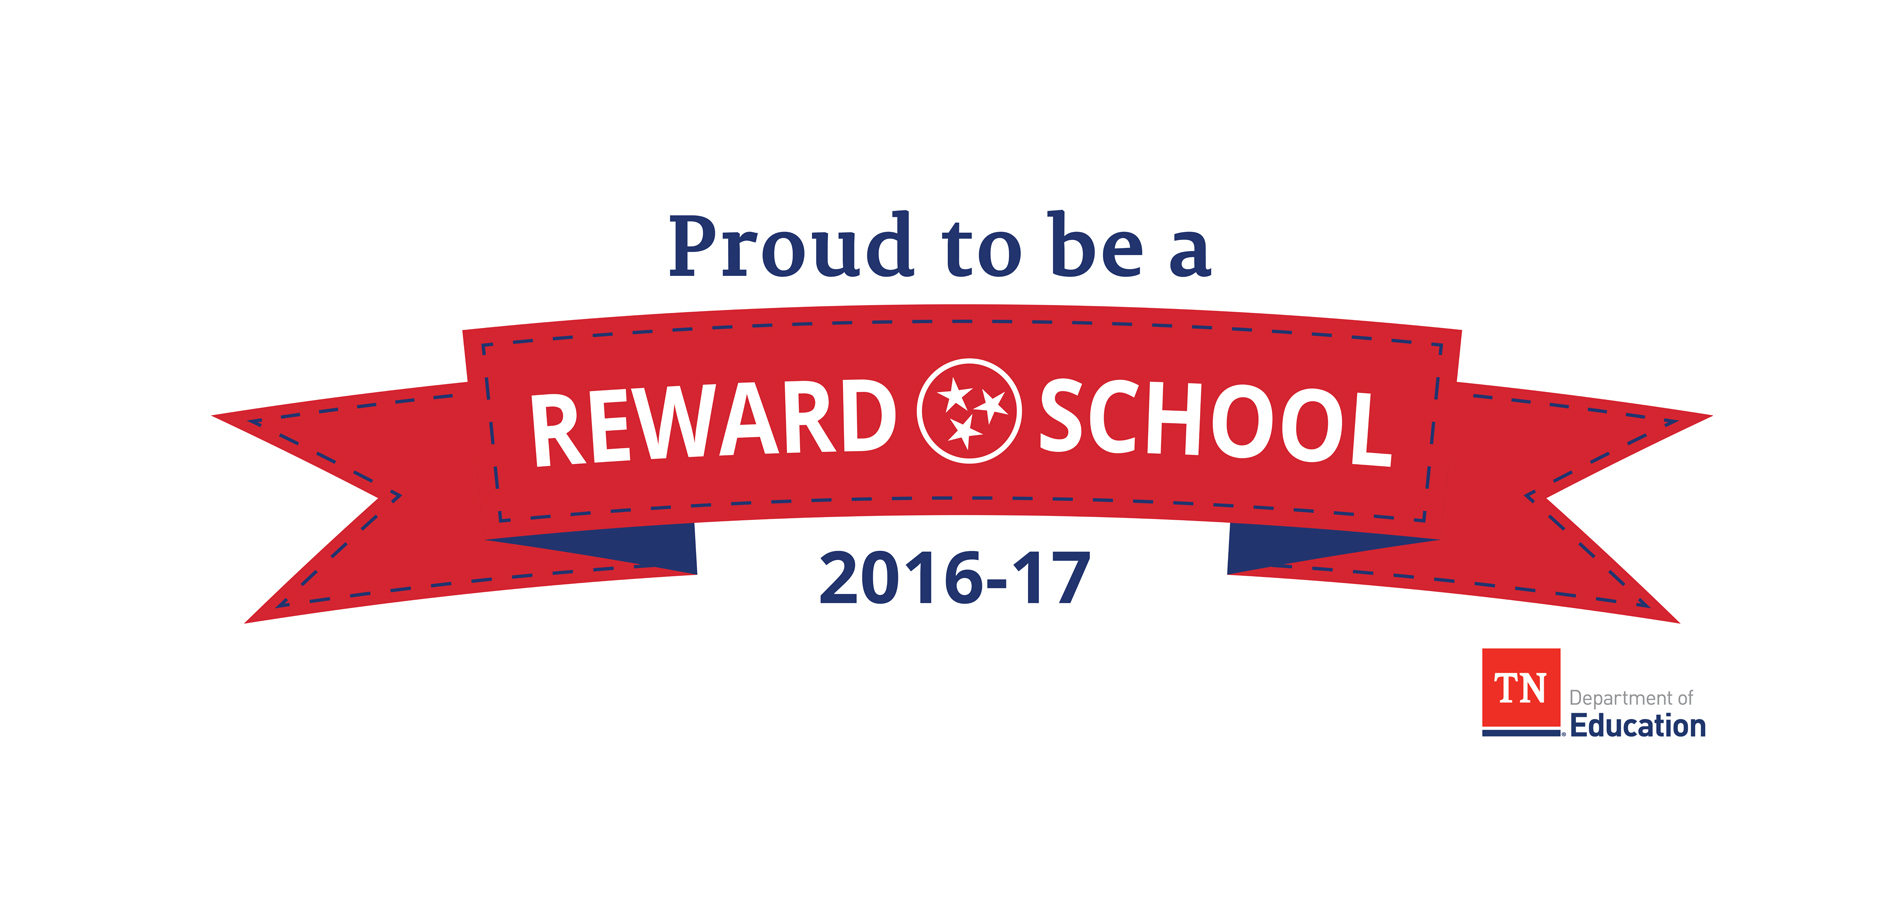 Proud to be a Reward School